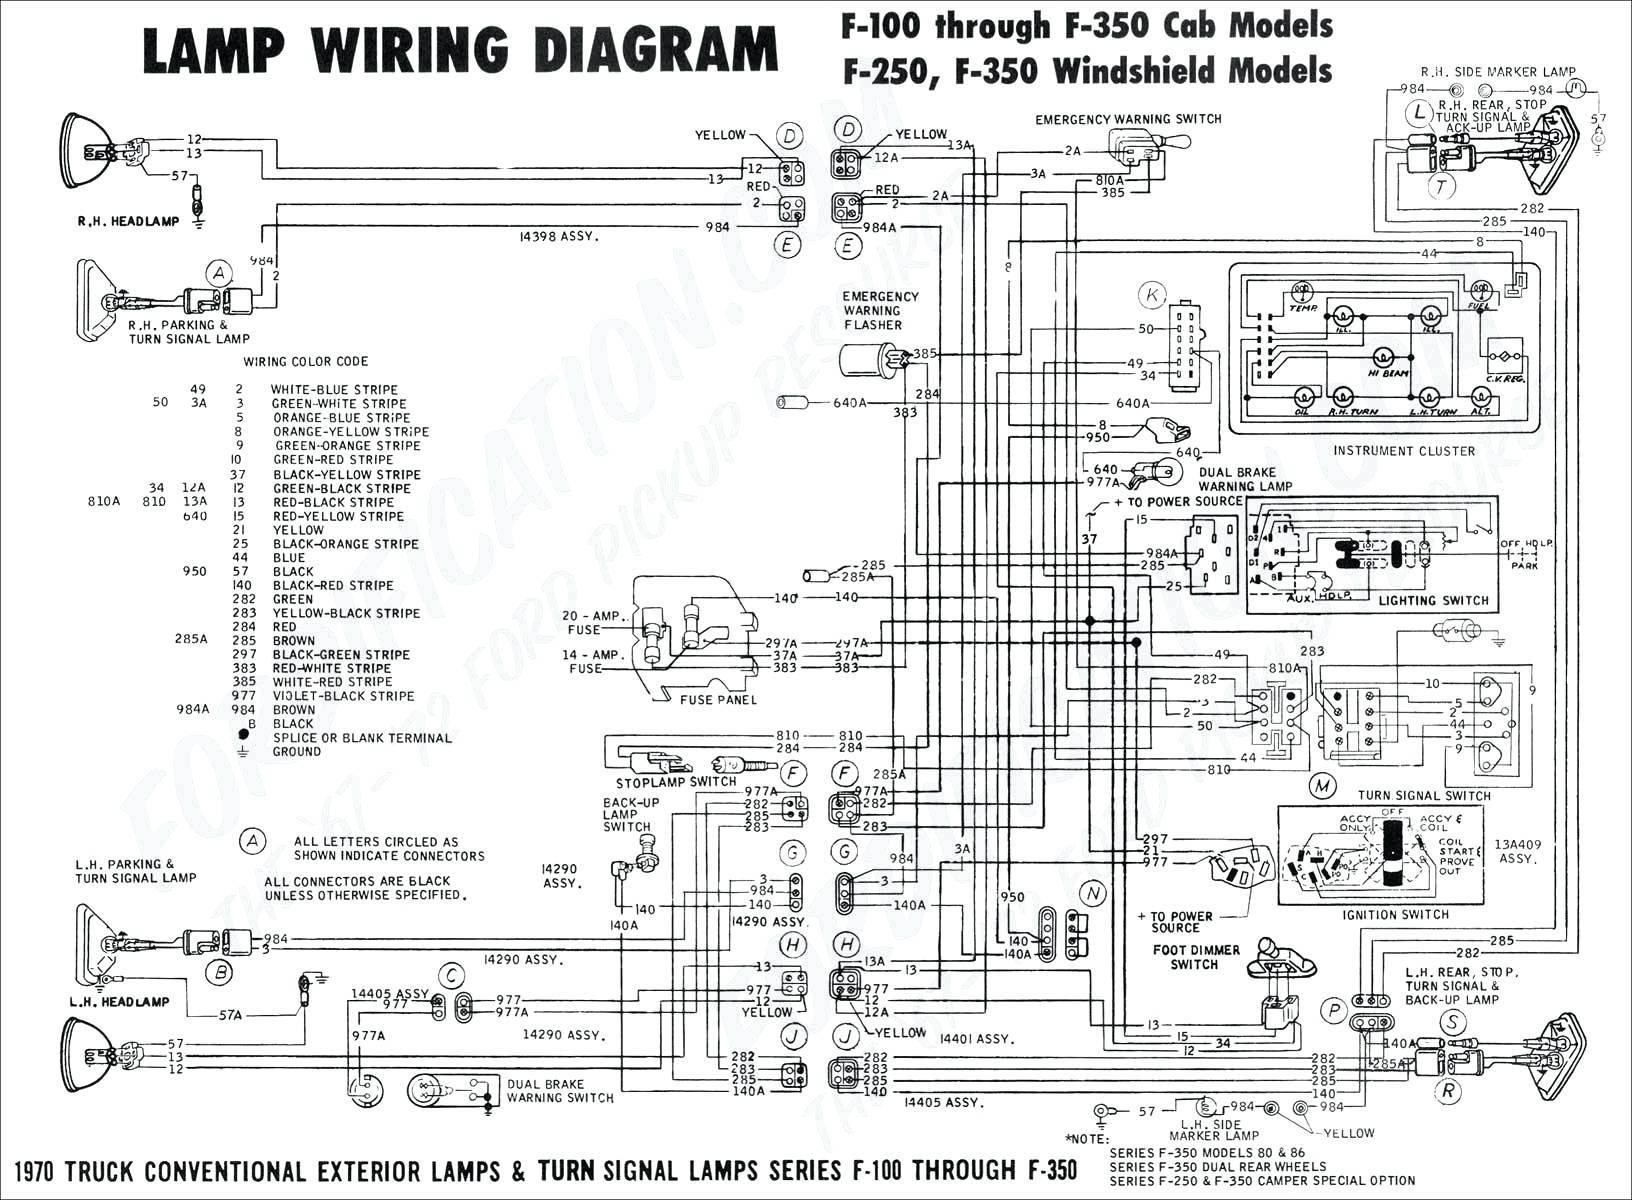 hight resolution of 2005 chevy equinox wiring diagram 2006 tahoe wiring diagram experts wiring diagram of 2005 chevy